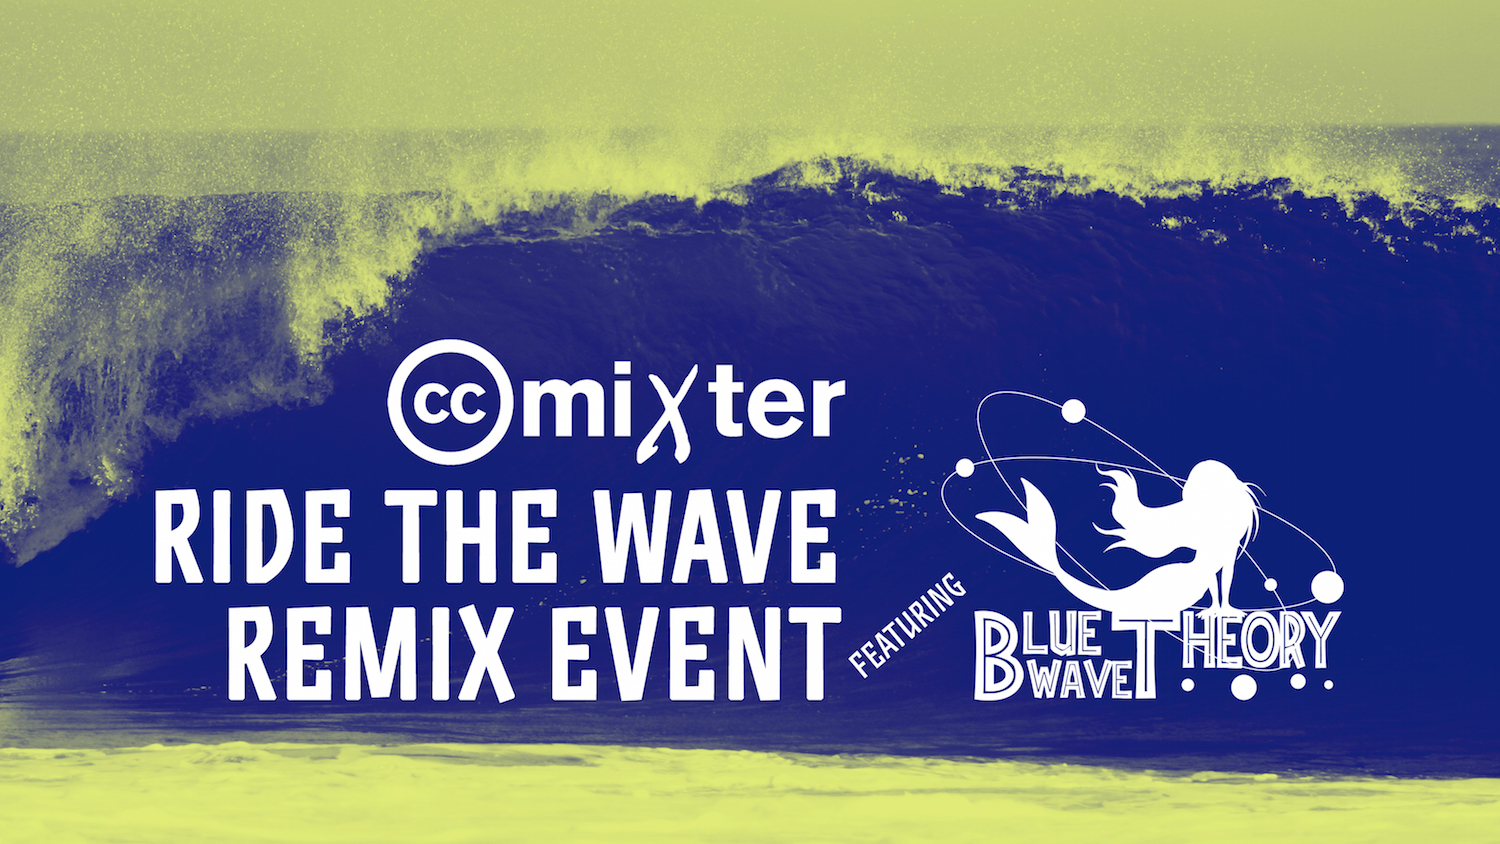 ccMixter Ride the Wave Remix Event